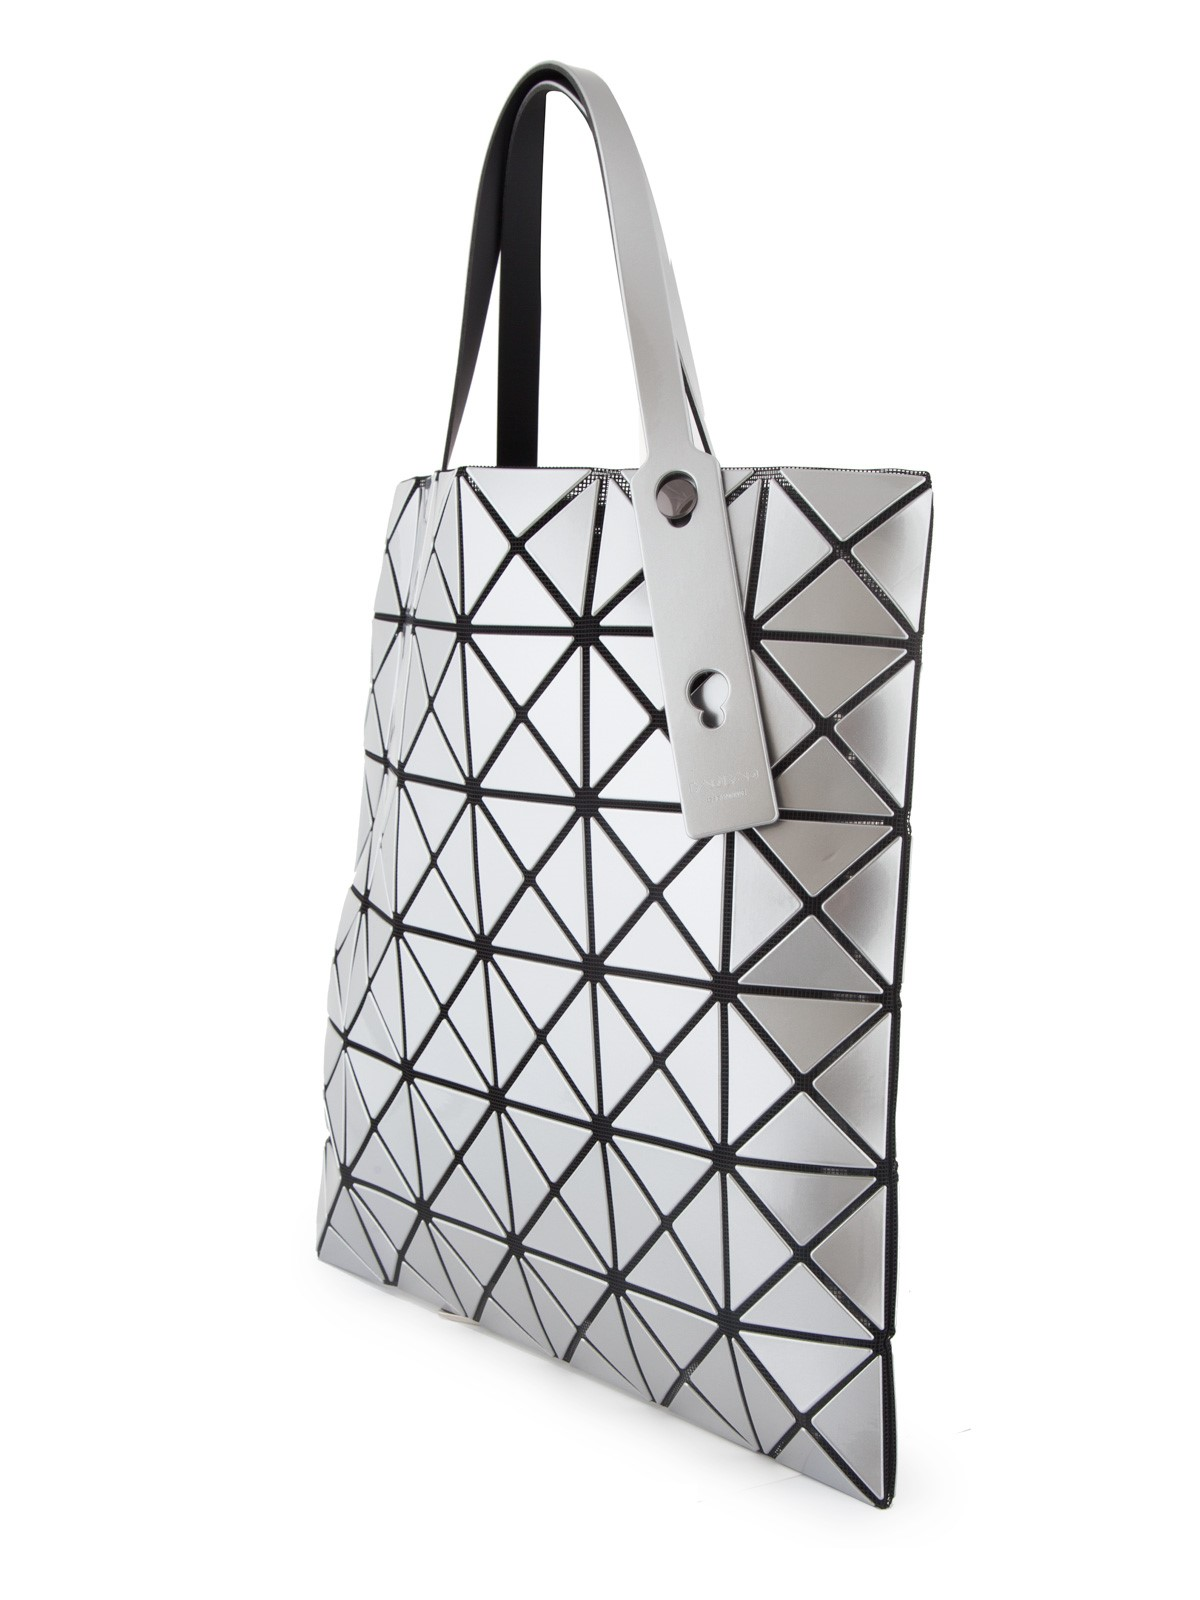 db775be8bb bao bao issey miyake TOTE BAG available on montiboutique.com - 22236